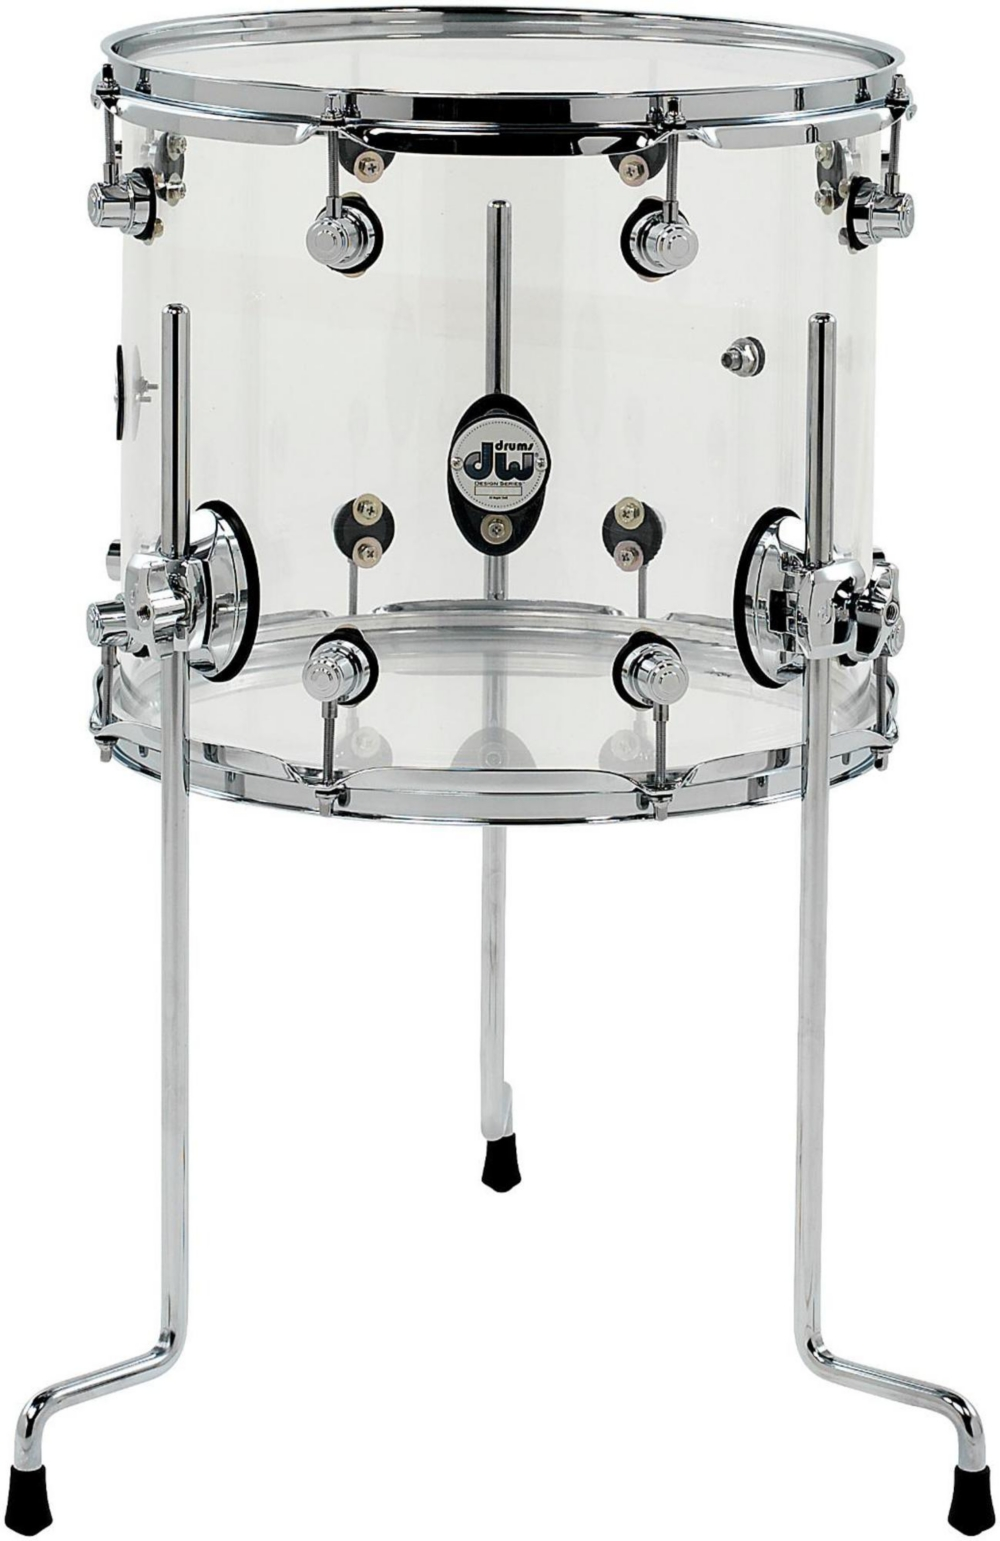 DW Design Series Acrylic Floor Tom with Chrome Hardware 14 x 12 in. Clear by DW